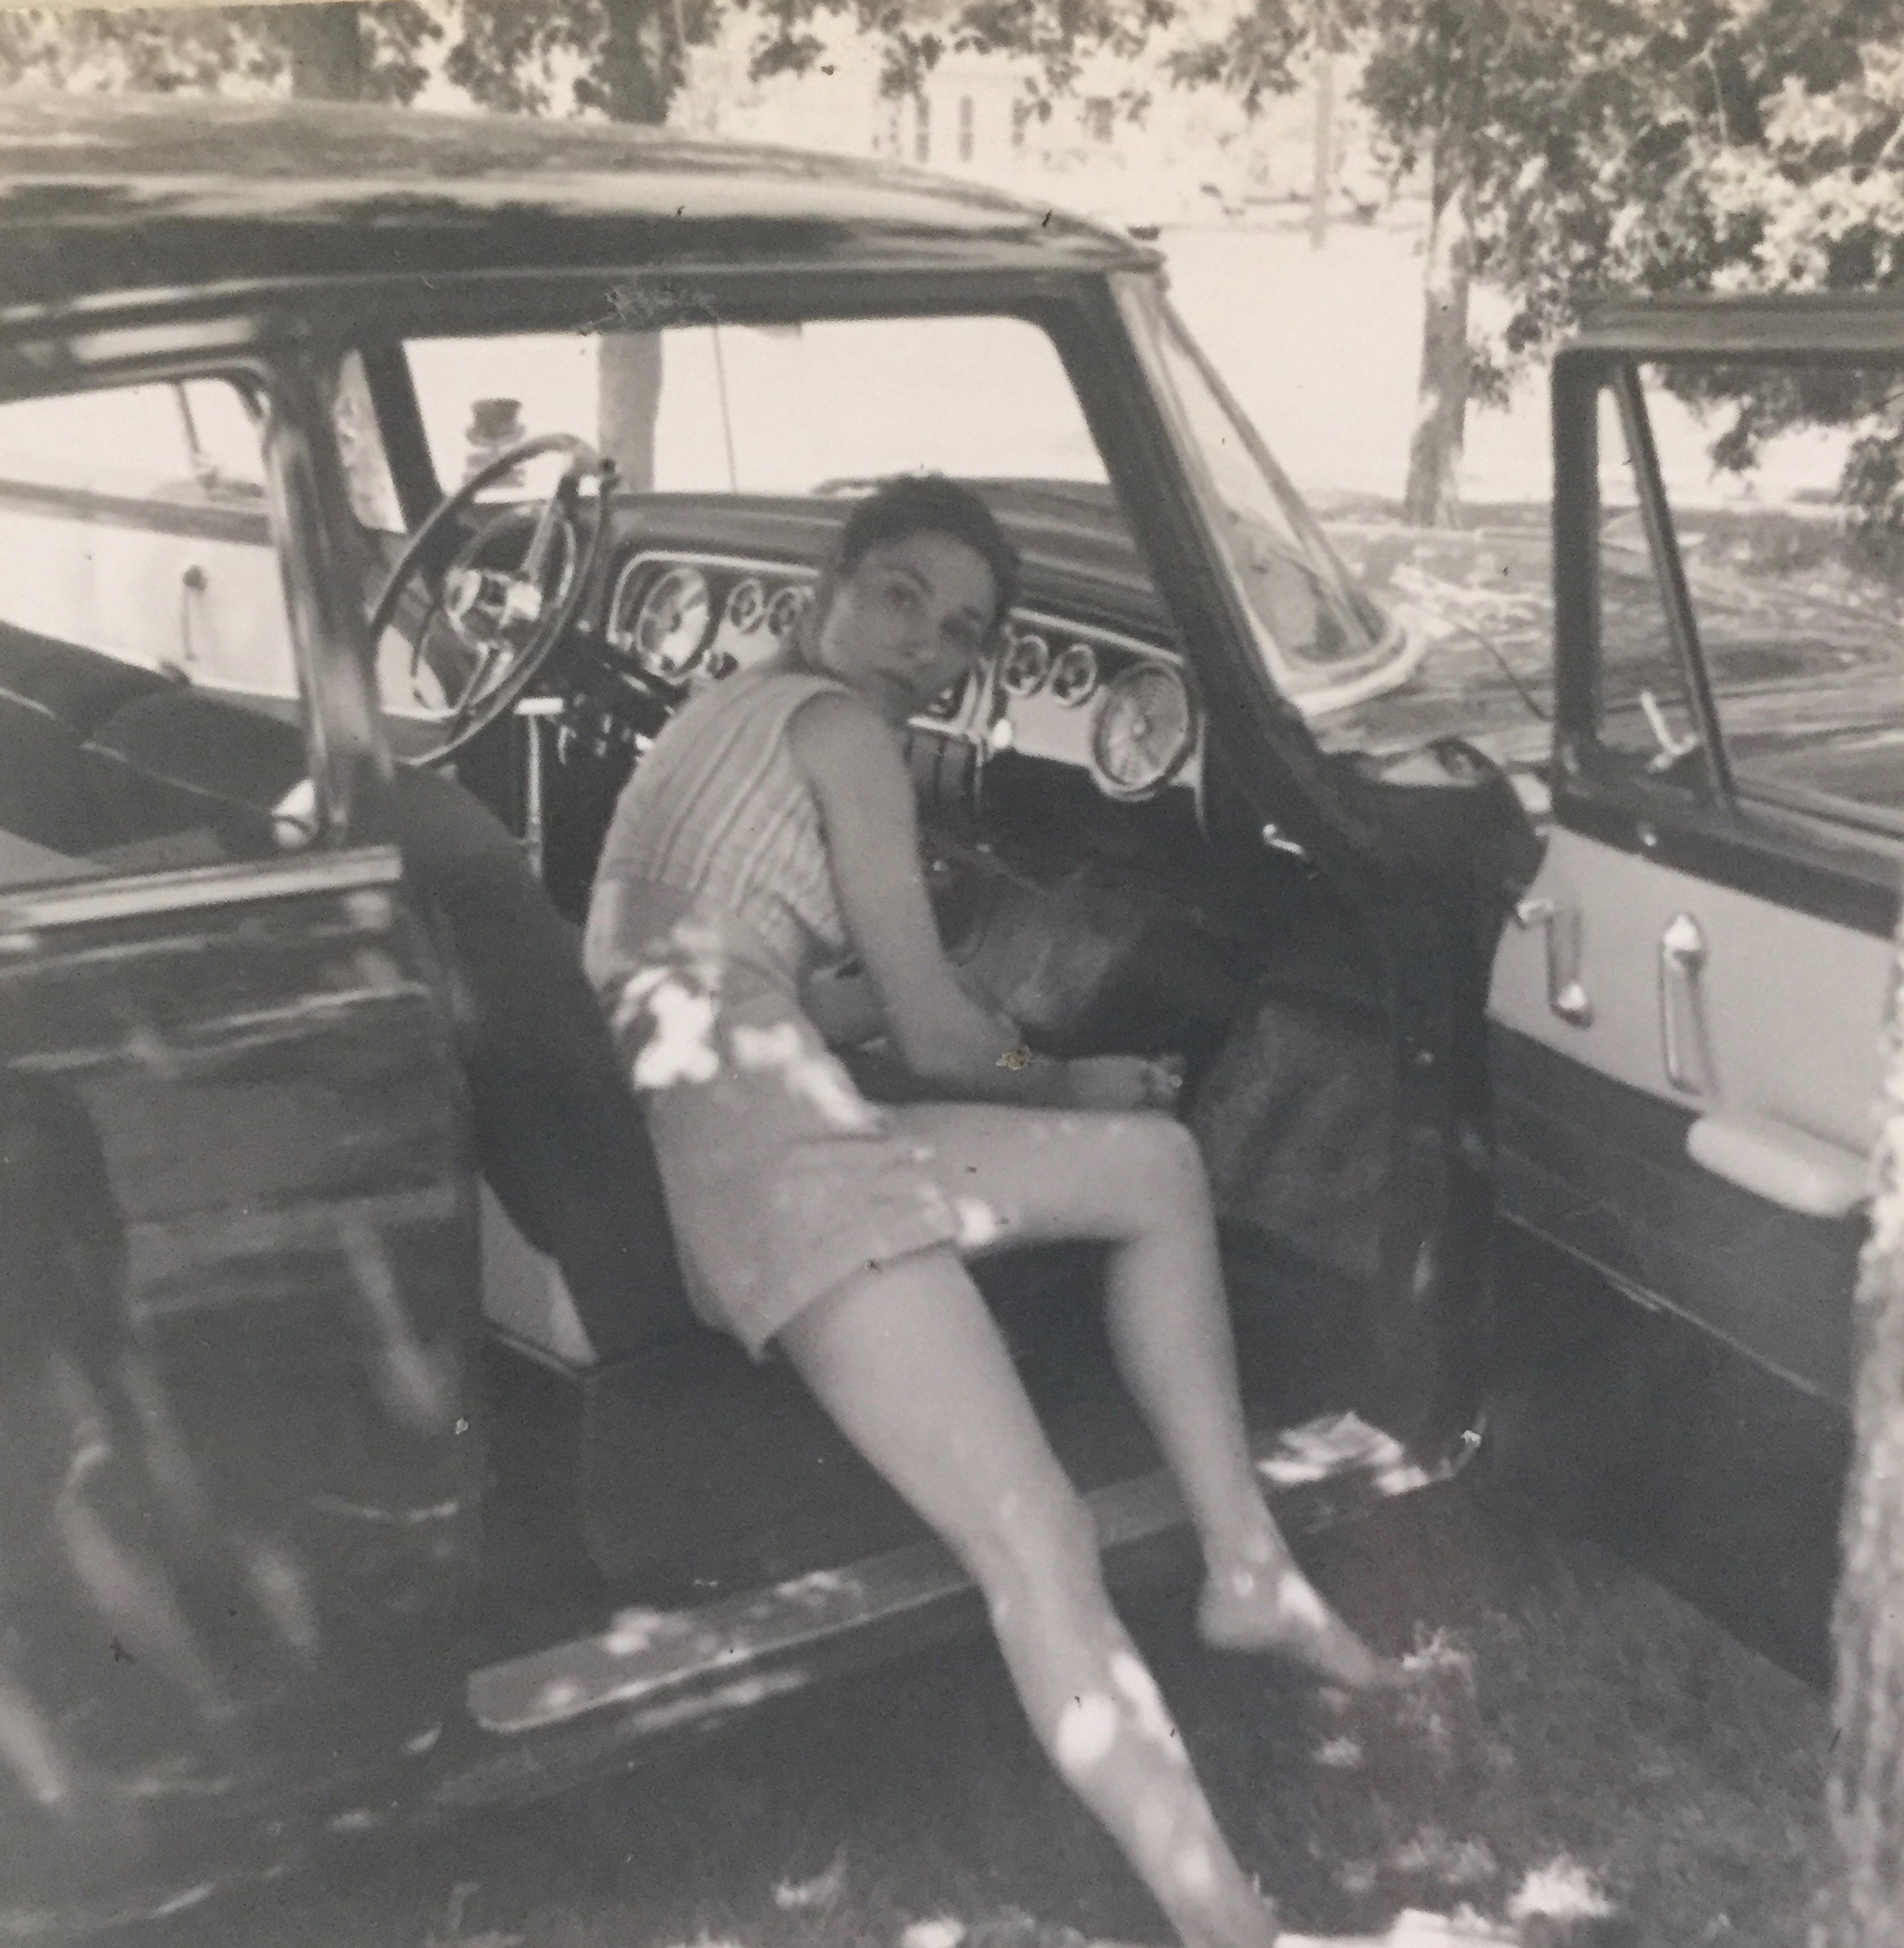 Augusta, mid 1950s, one of many shots of her amazing legs.